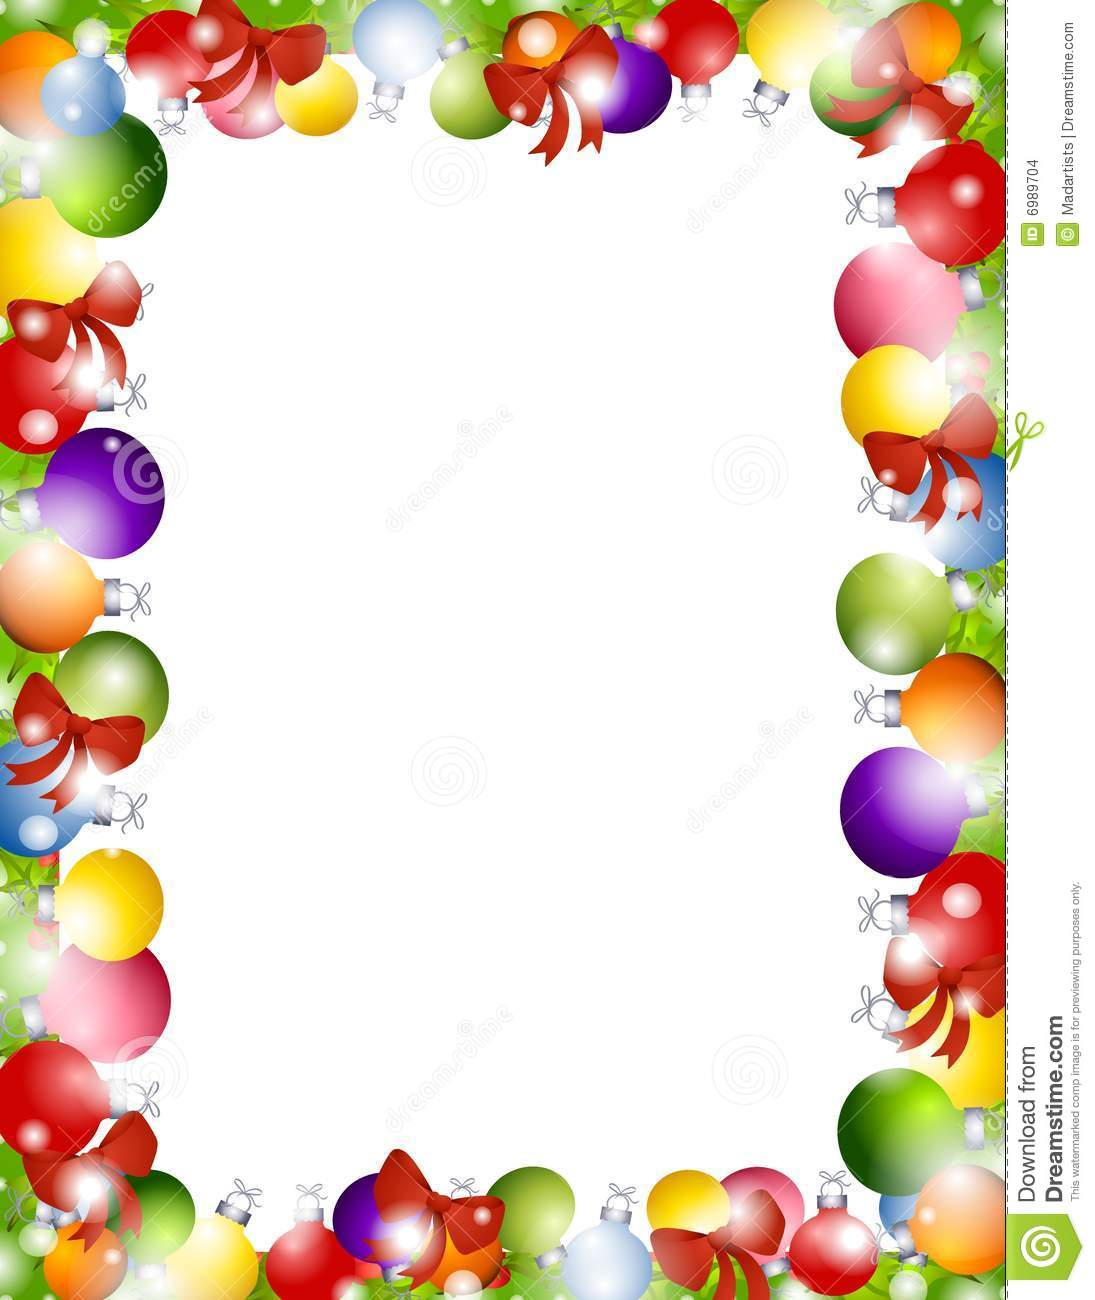 Christmas ornaments border stock illustration